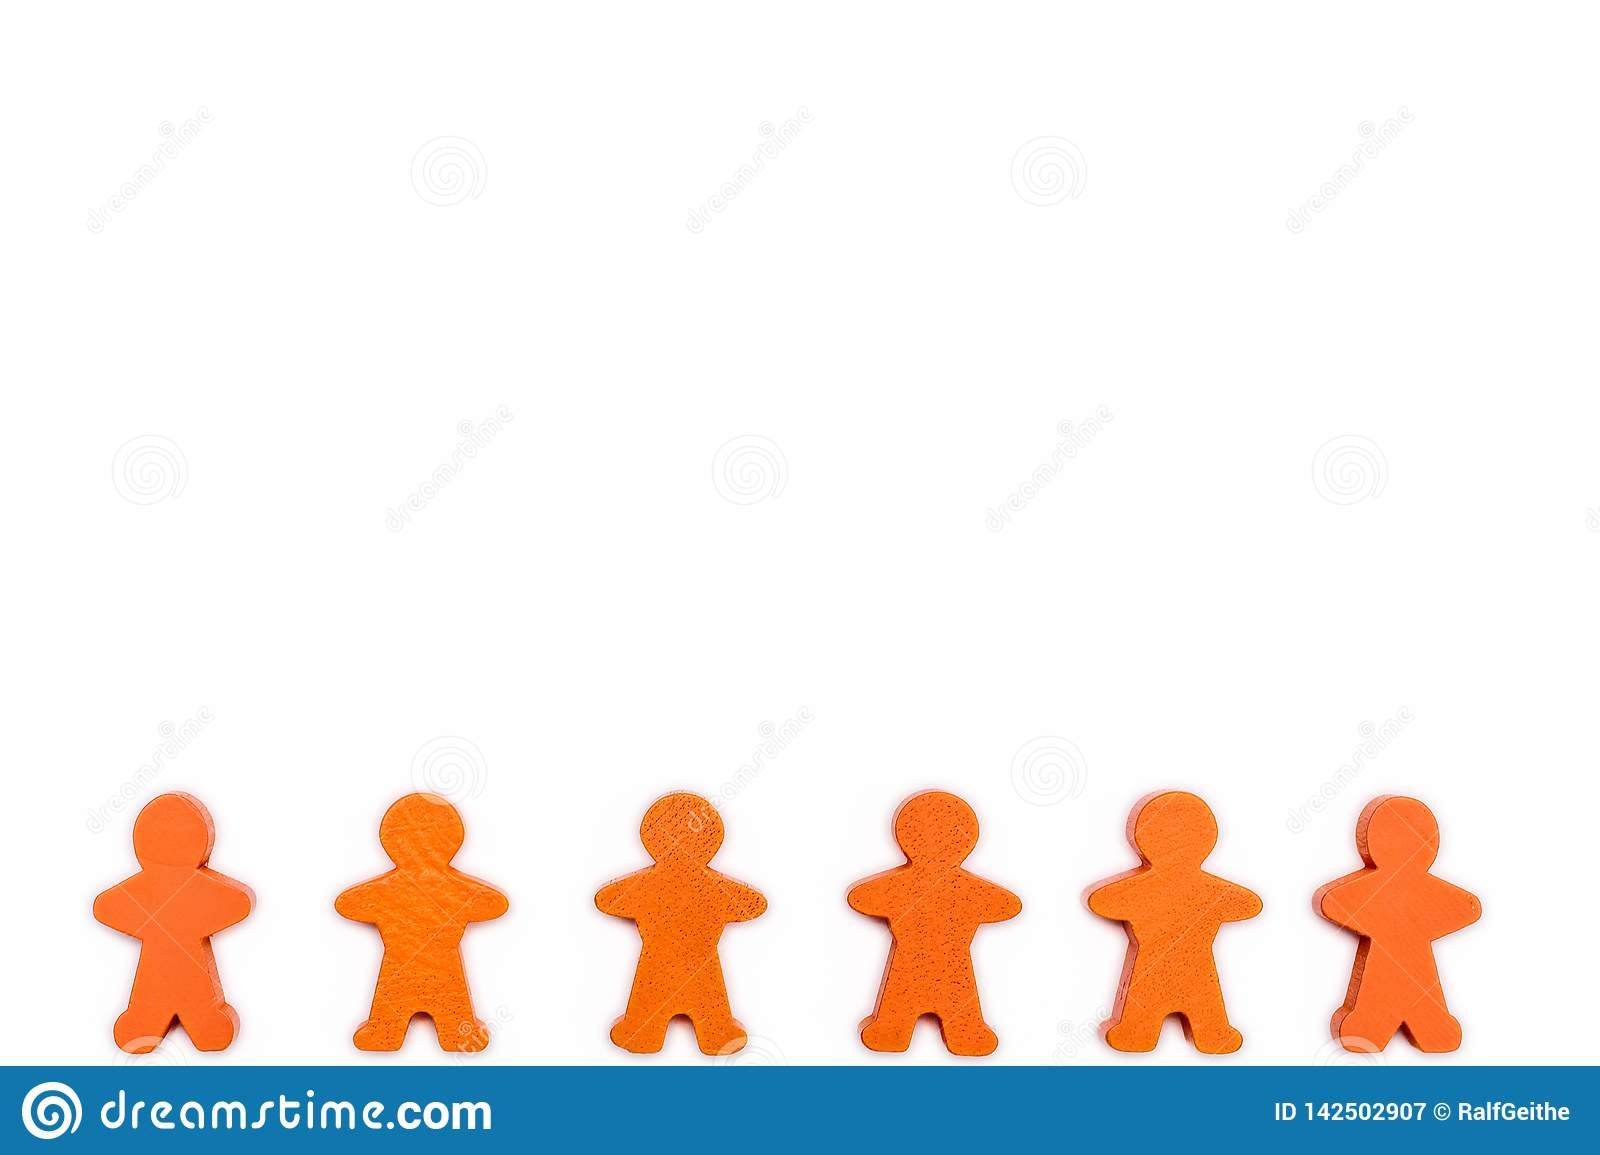 White background with human chain of wooden figures as a symbol of a community